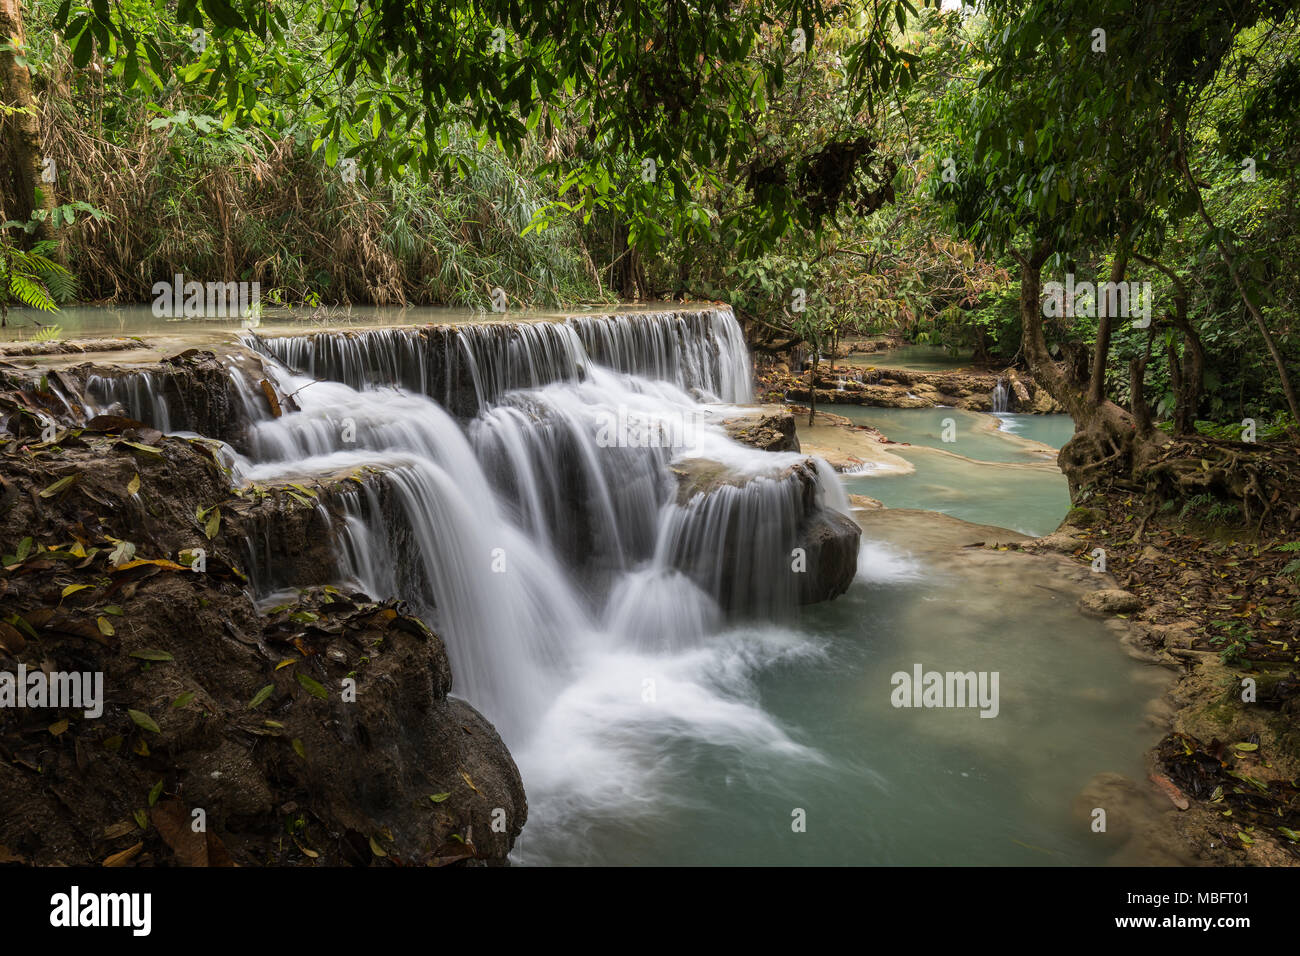 Beautiful view of a small waterfall at the Tat Kuang Si Waterfalls near Luang Prabang in Laos. - Stock Image